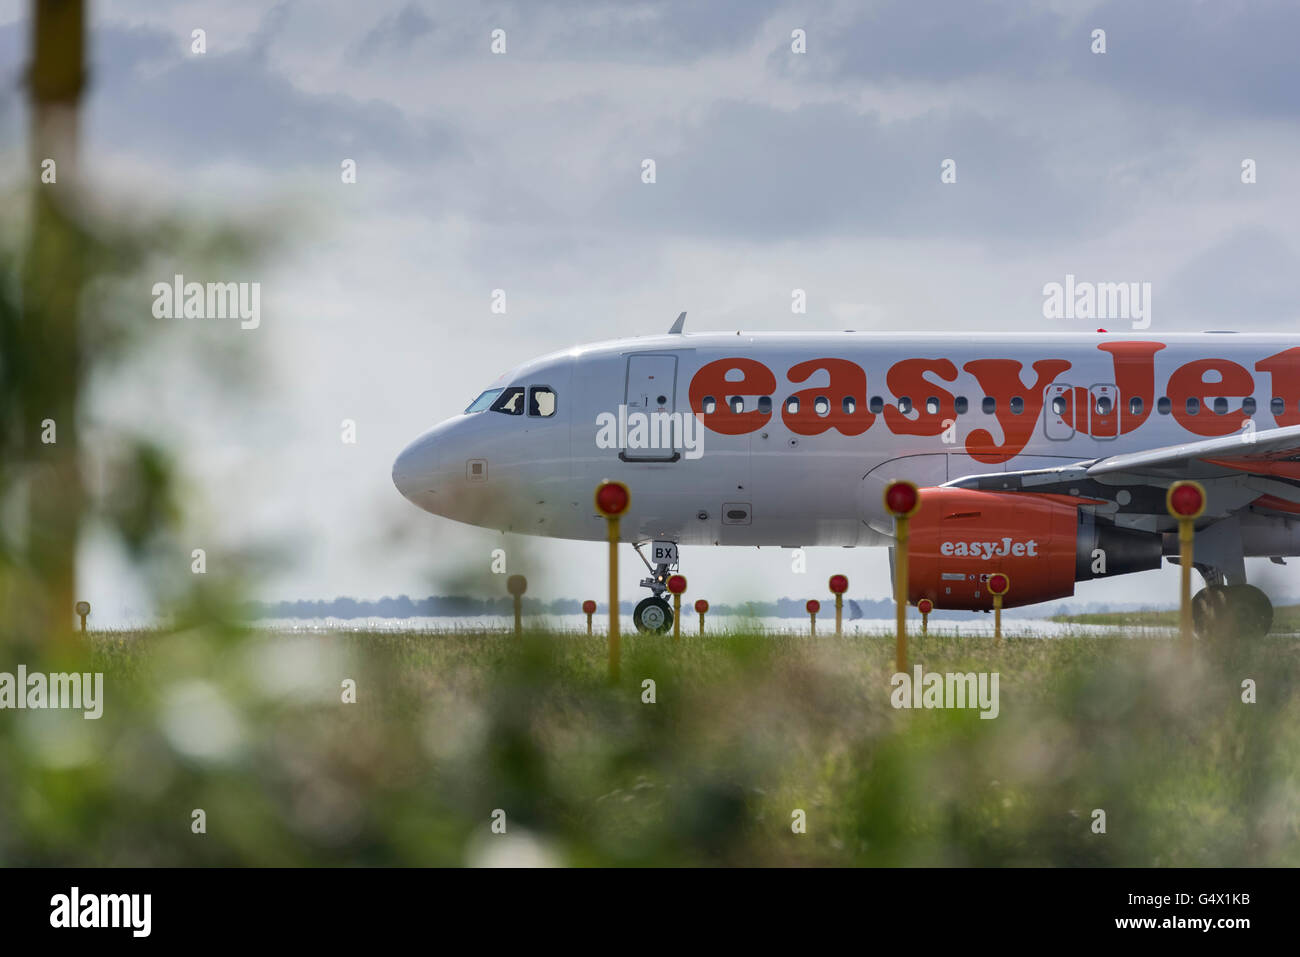 EasyJet Airline Airbus A319 aircraft Reg G-EZBX lined up for takeoff. - Stock Image